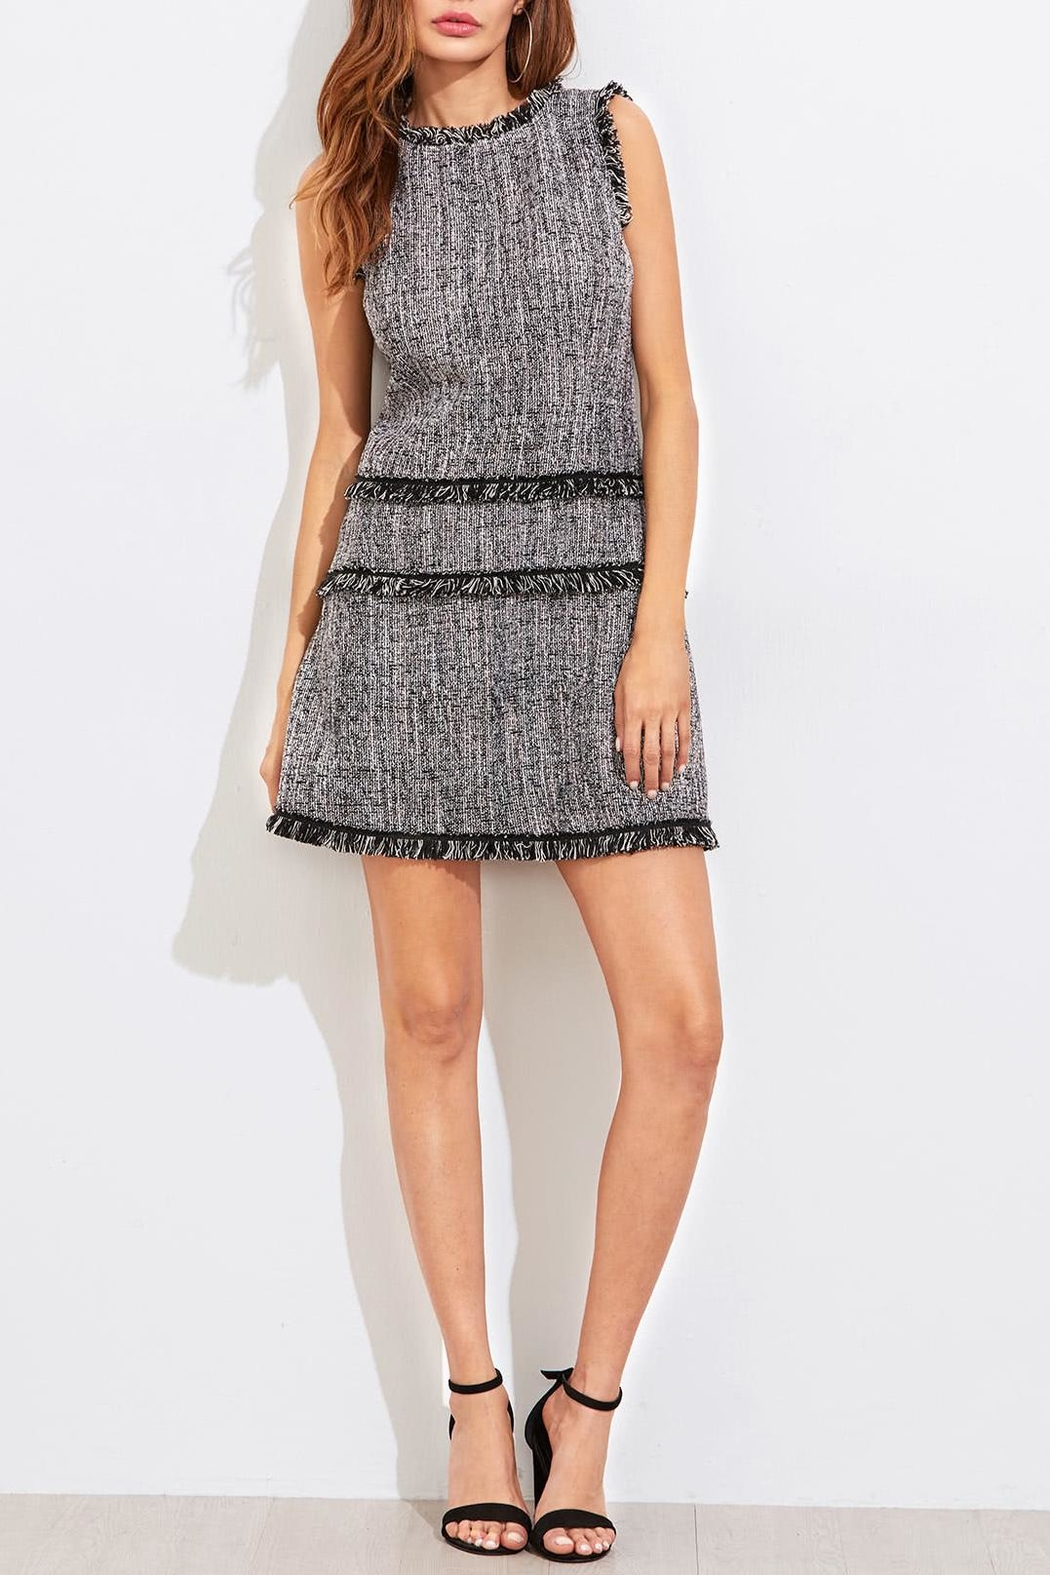 House of Atelier Classic Tweed Dress - Front Full Image